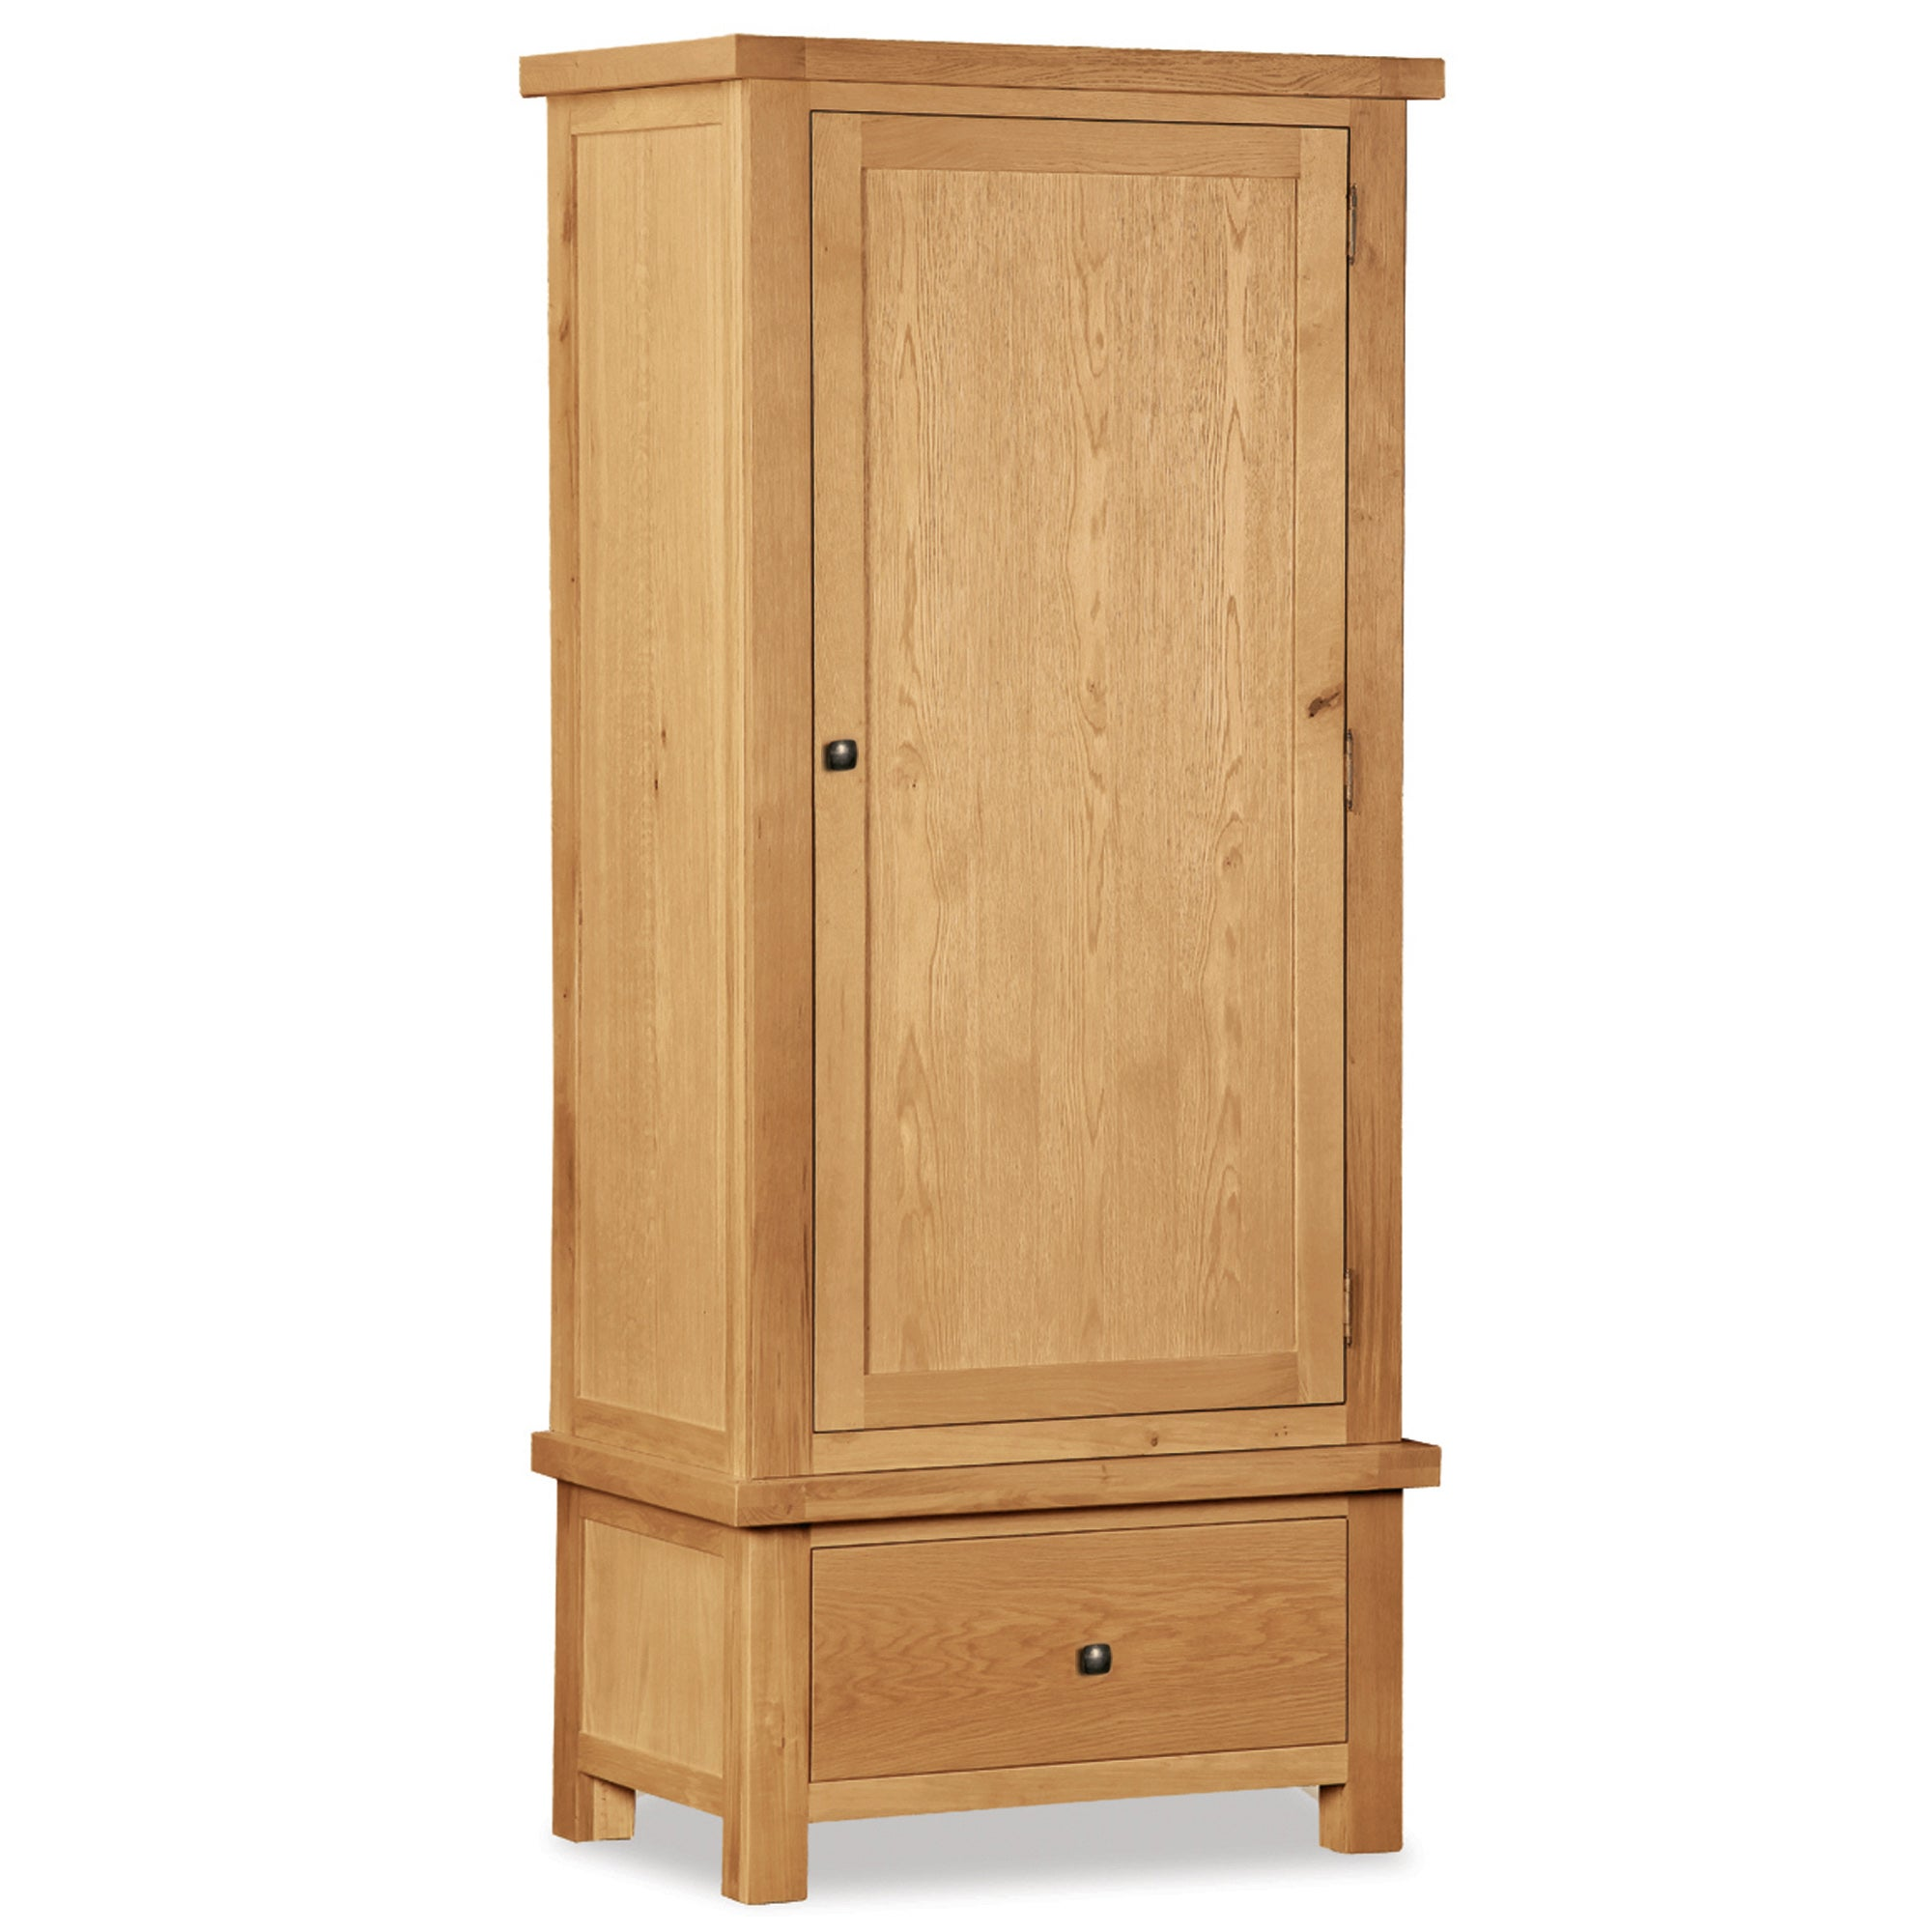 Harrogate Oak Single Wardrobe